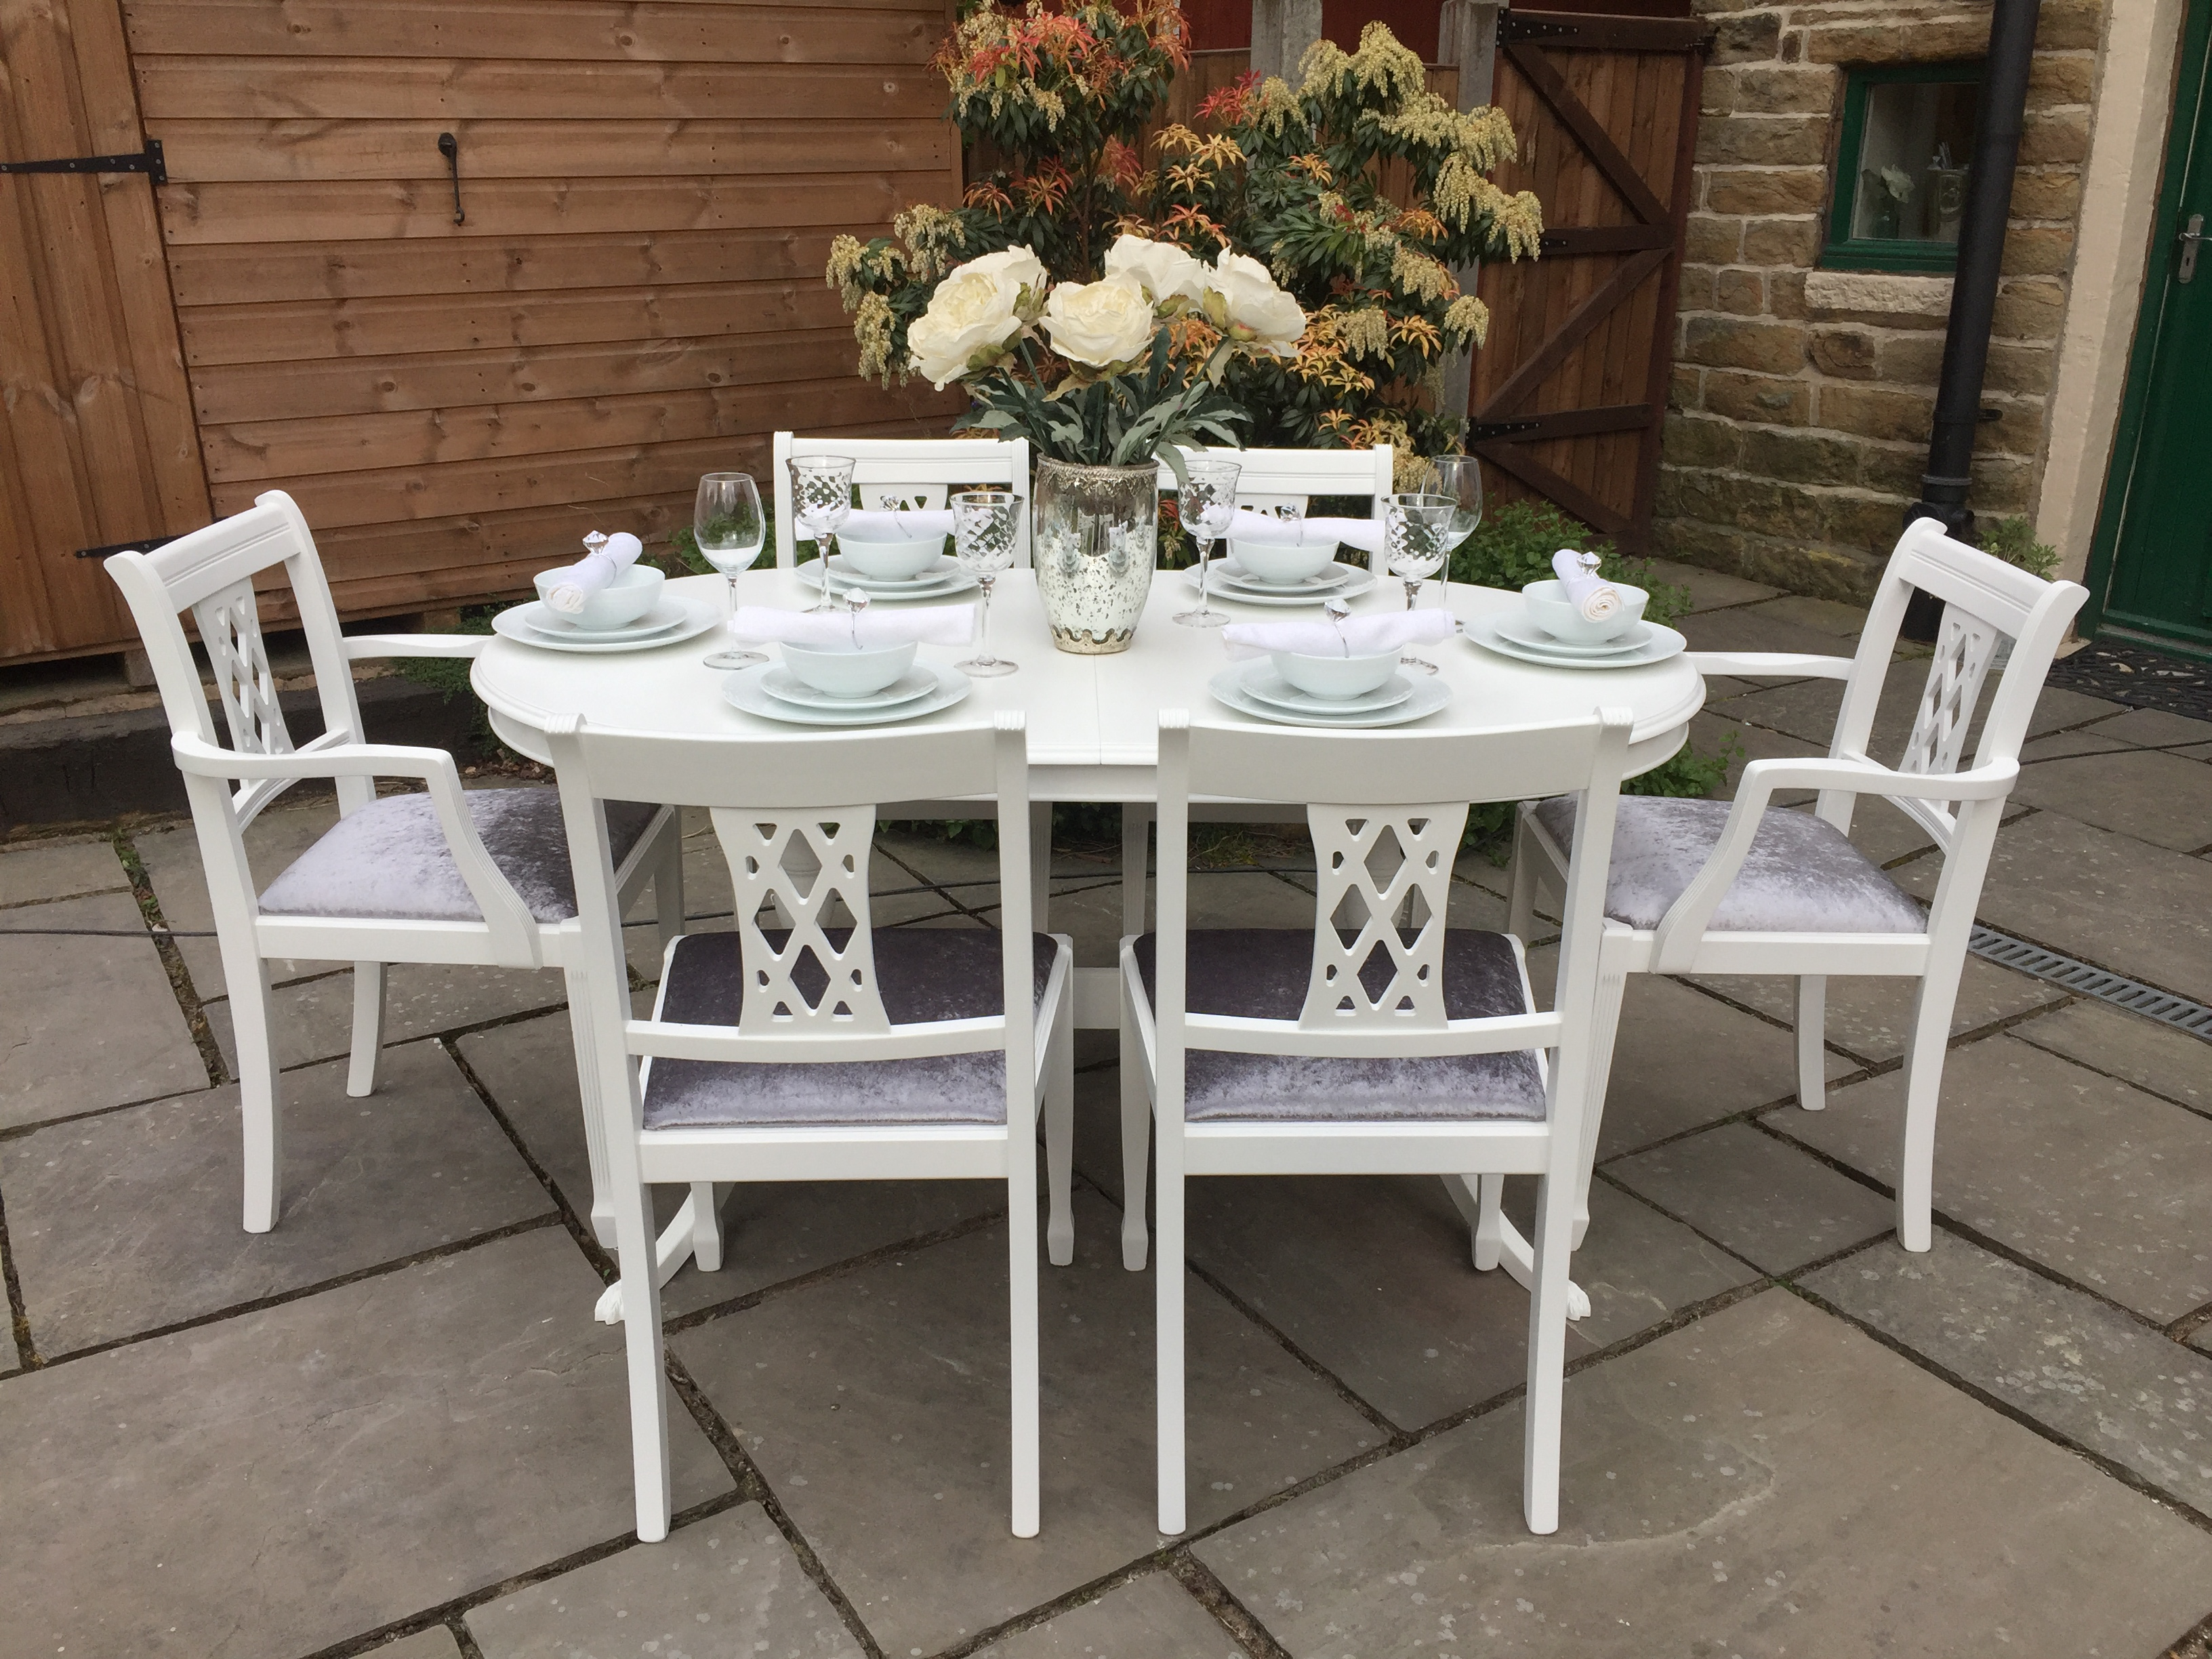 Vintage Extending Dining Table & 6 Diamond Back Chairs